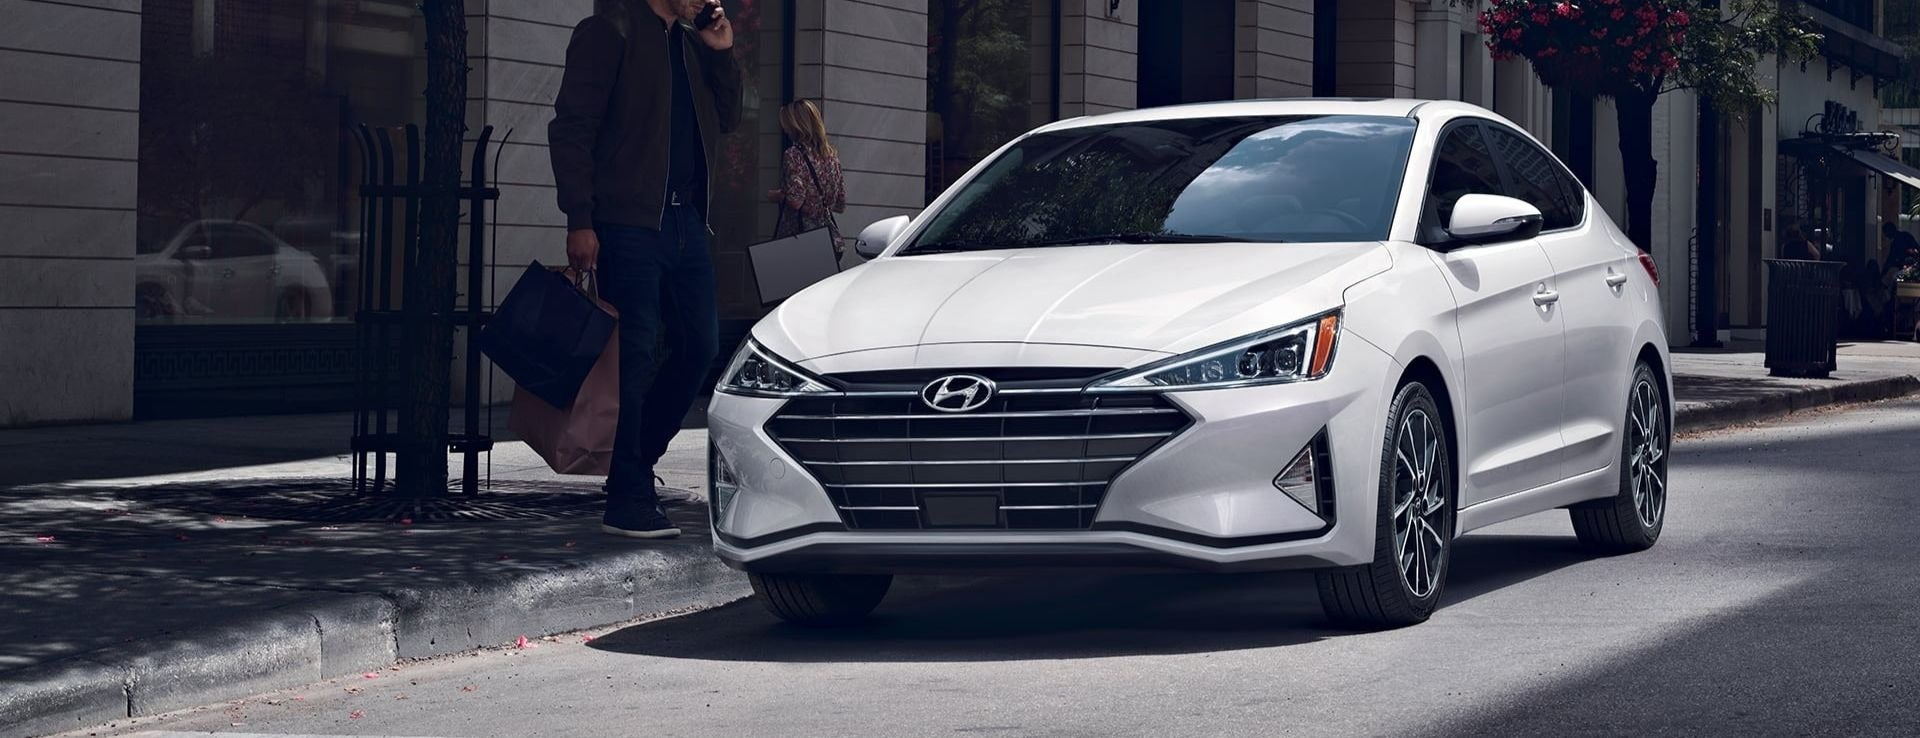 2020 Hyundai Elantra Sedan Wallpaper